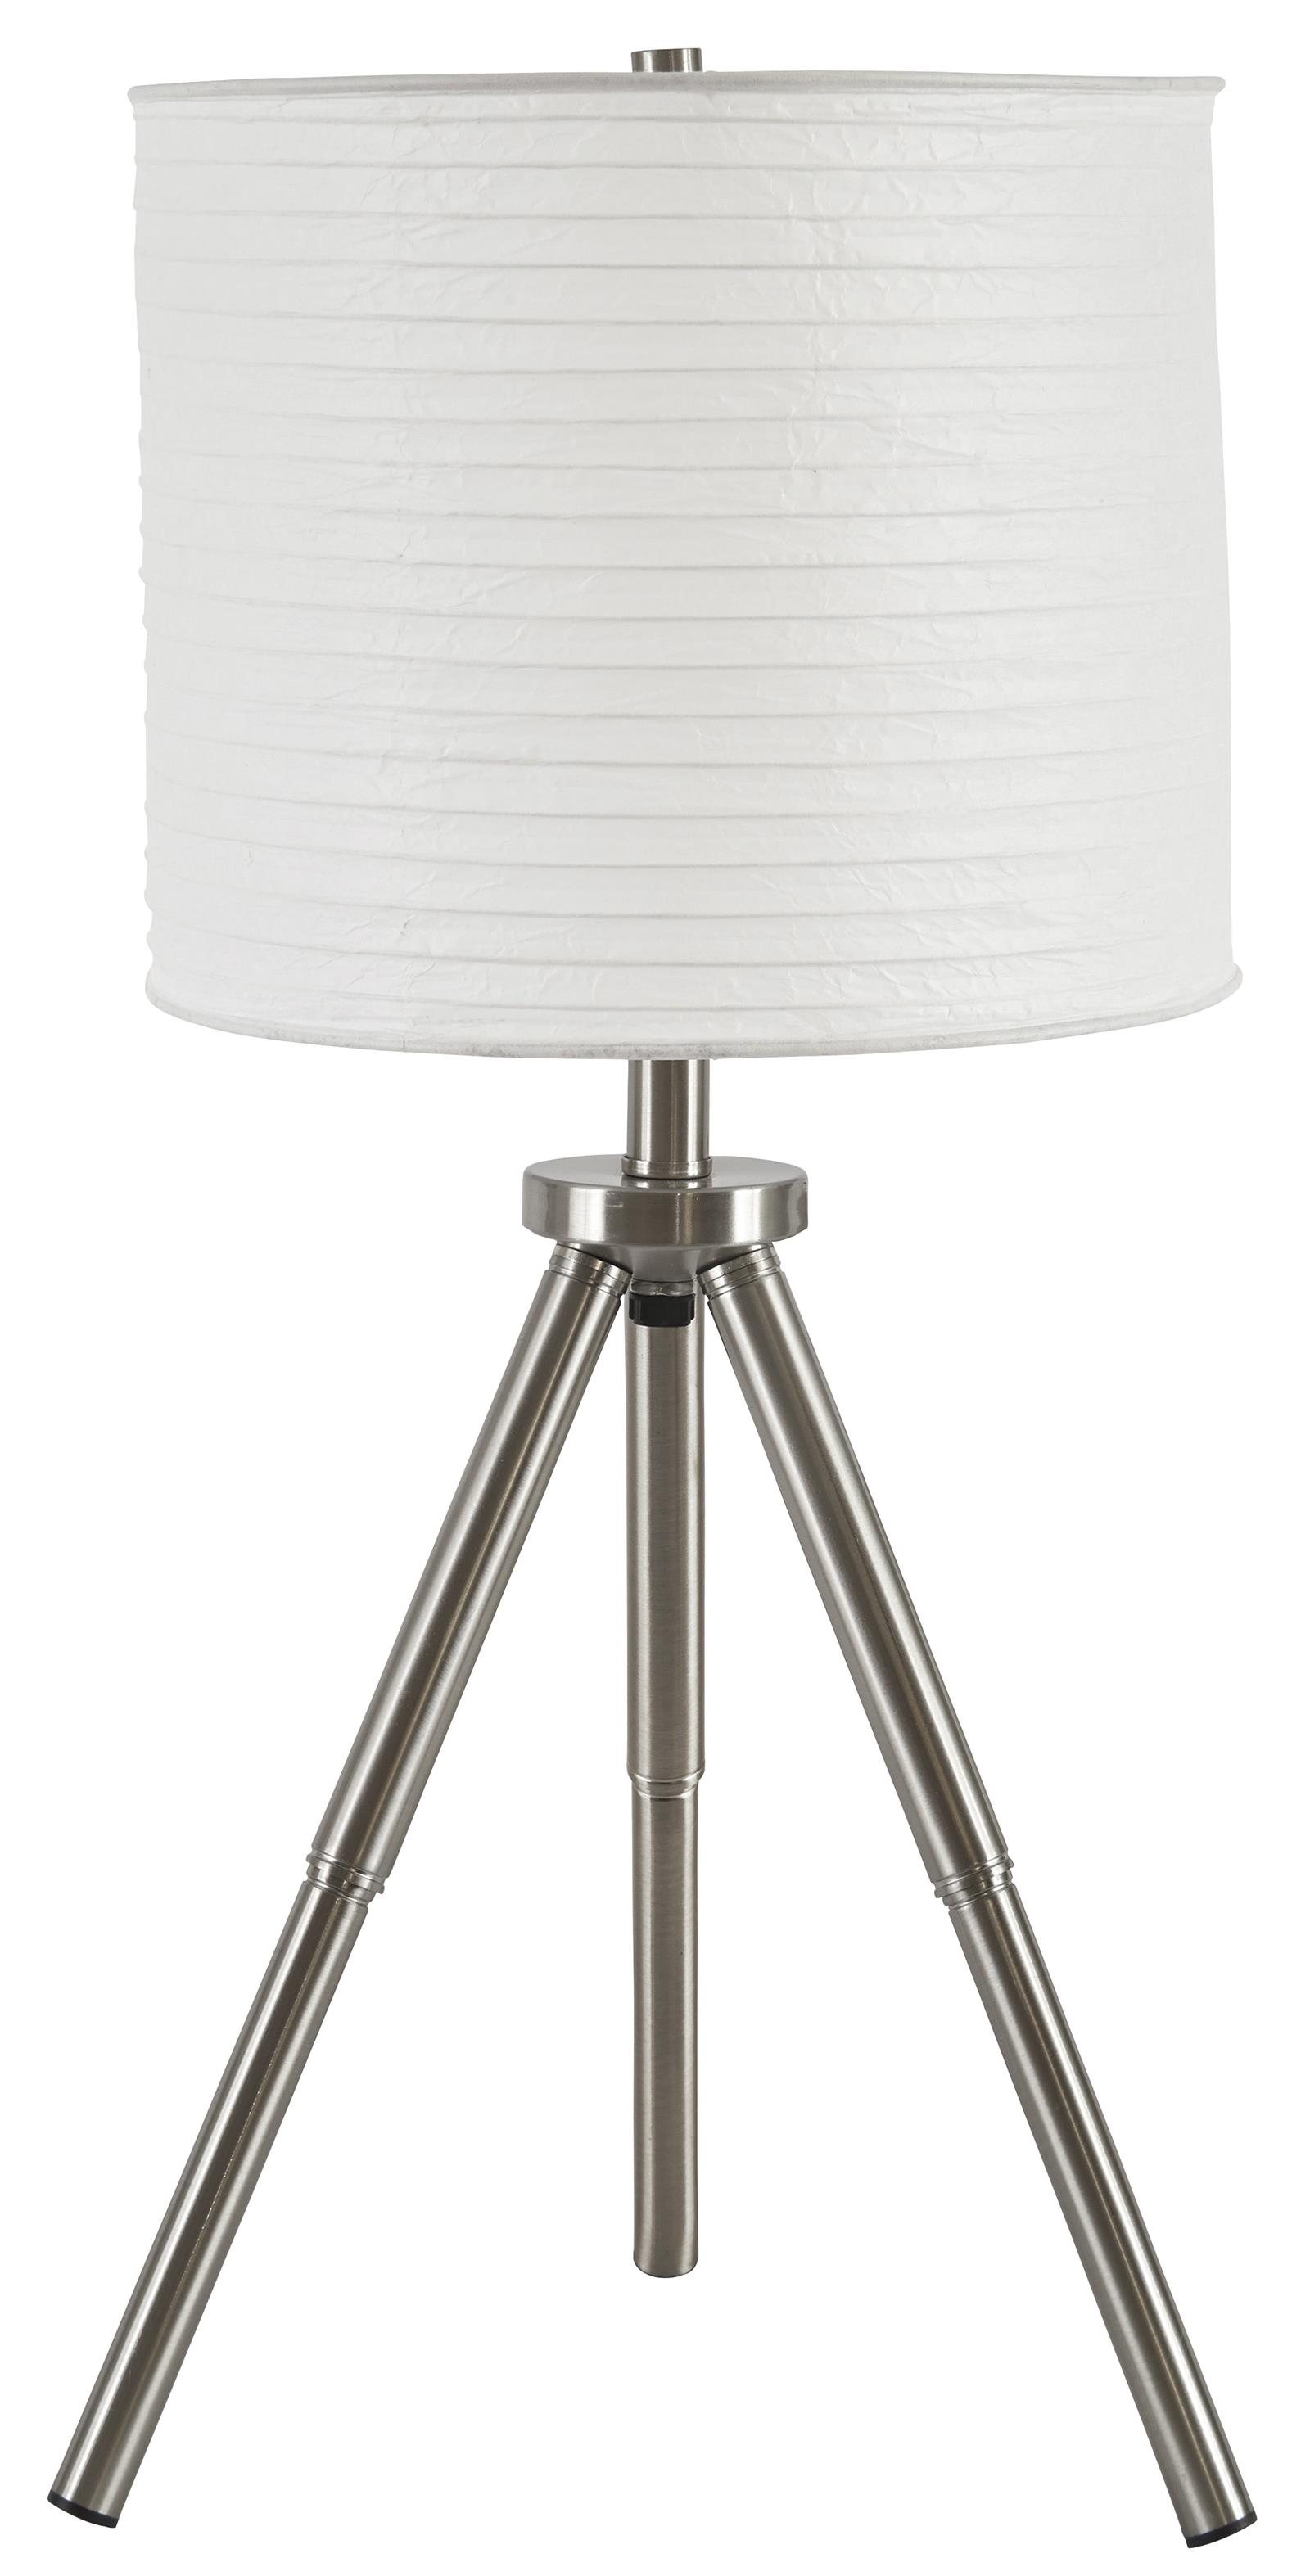 Signature Design by Ashley Lamps - Contemporary Set of 2 Susette Metal Table Lamps - Item Number: L204144